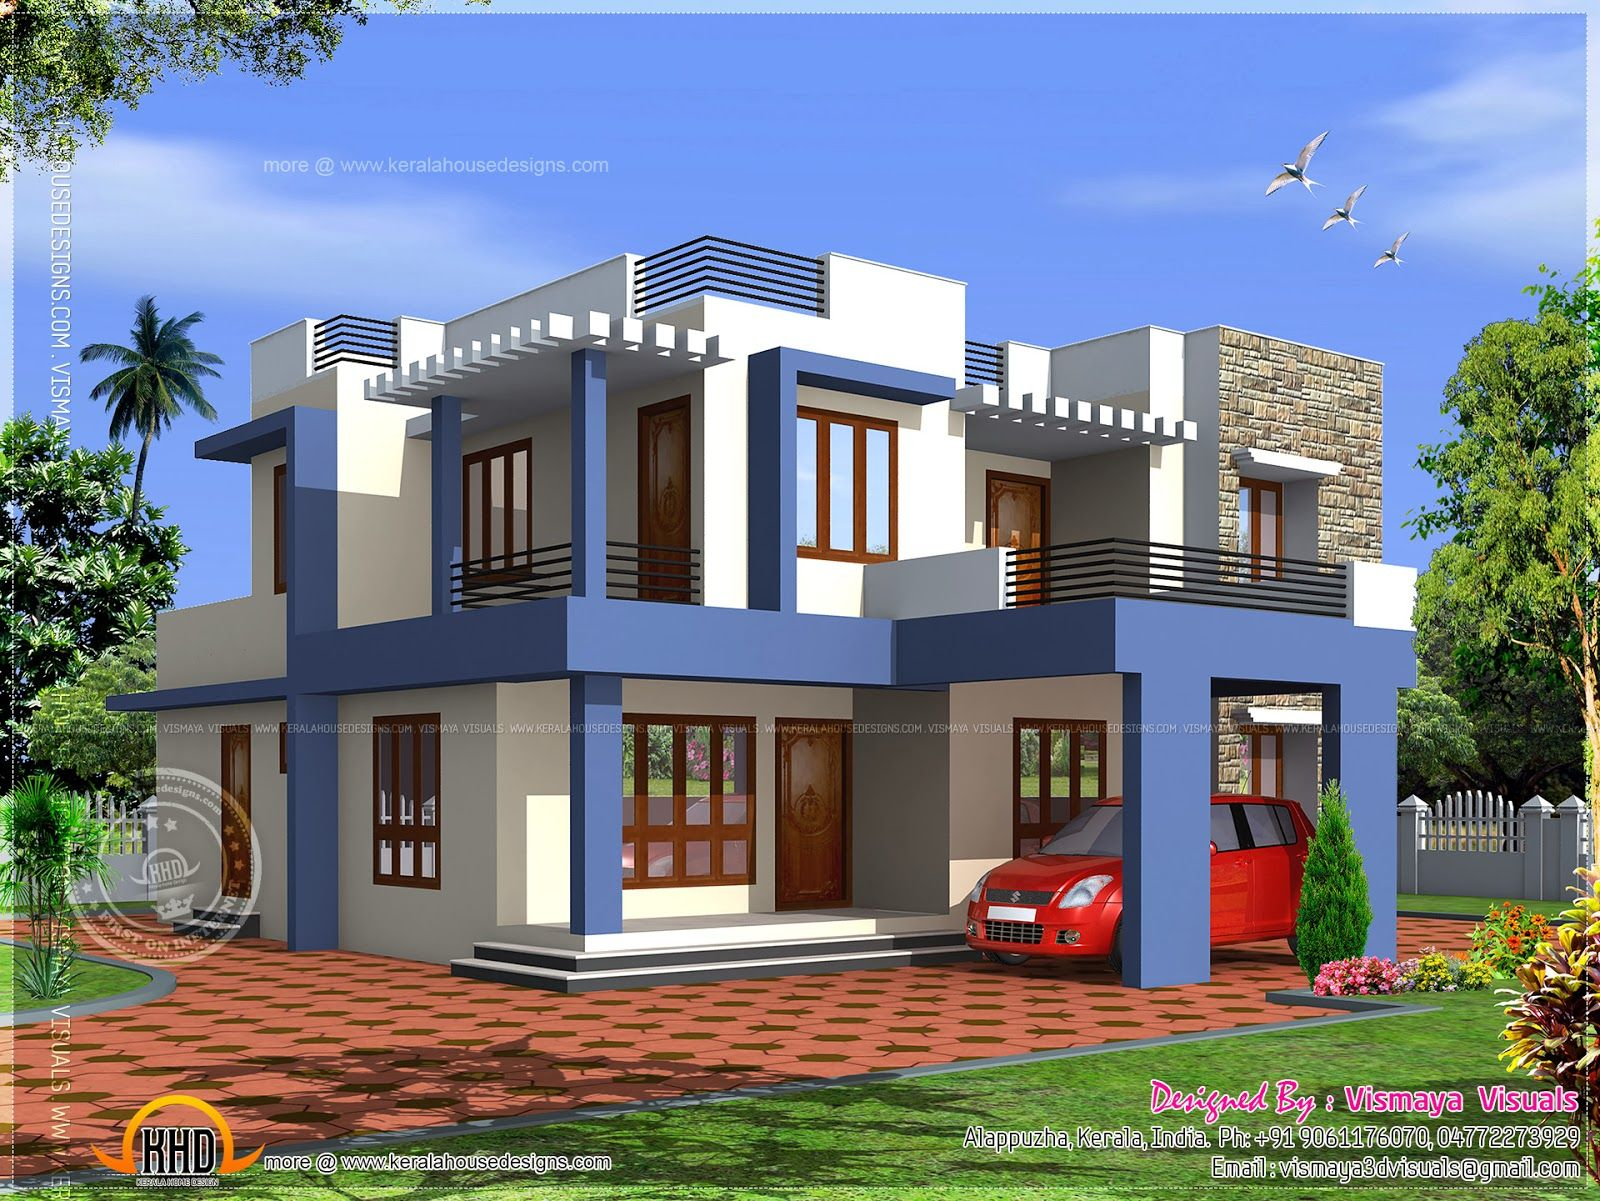 Contemporary Flat Roof House Designs Google Search Kerala House Design House Design Pictures House Architecture Design